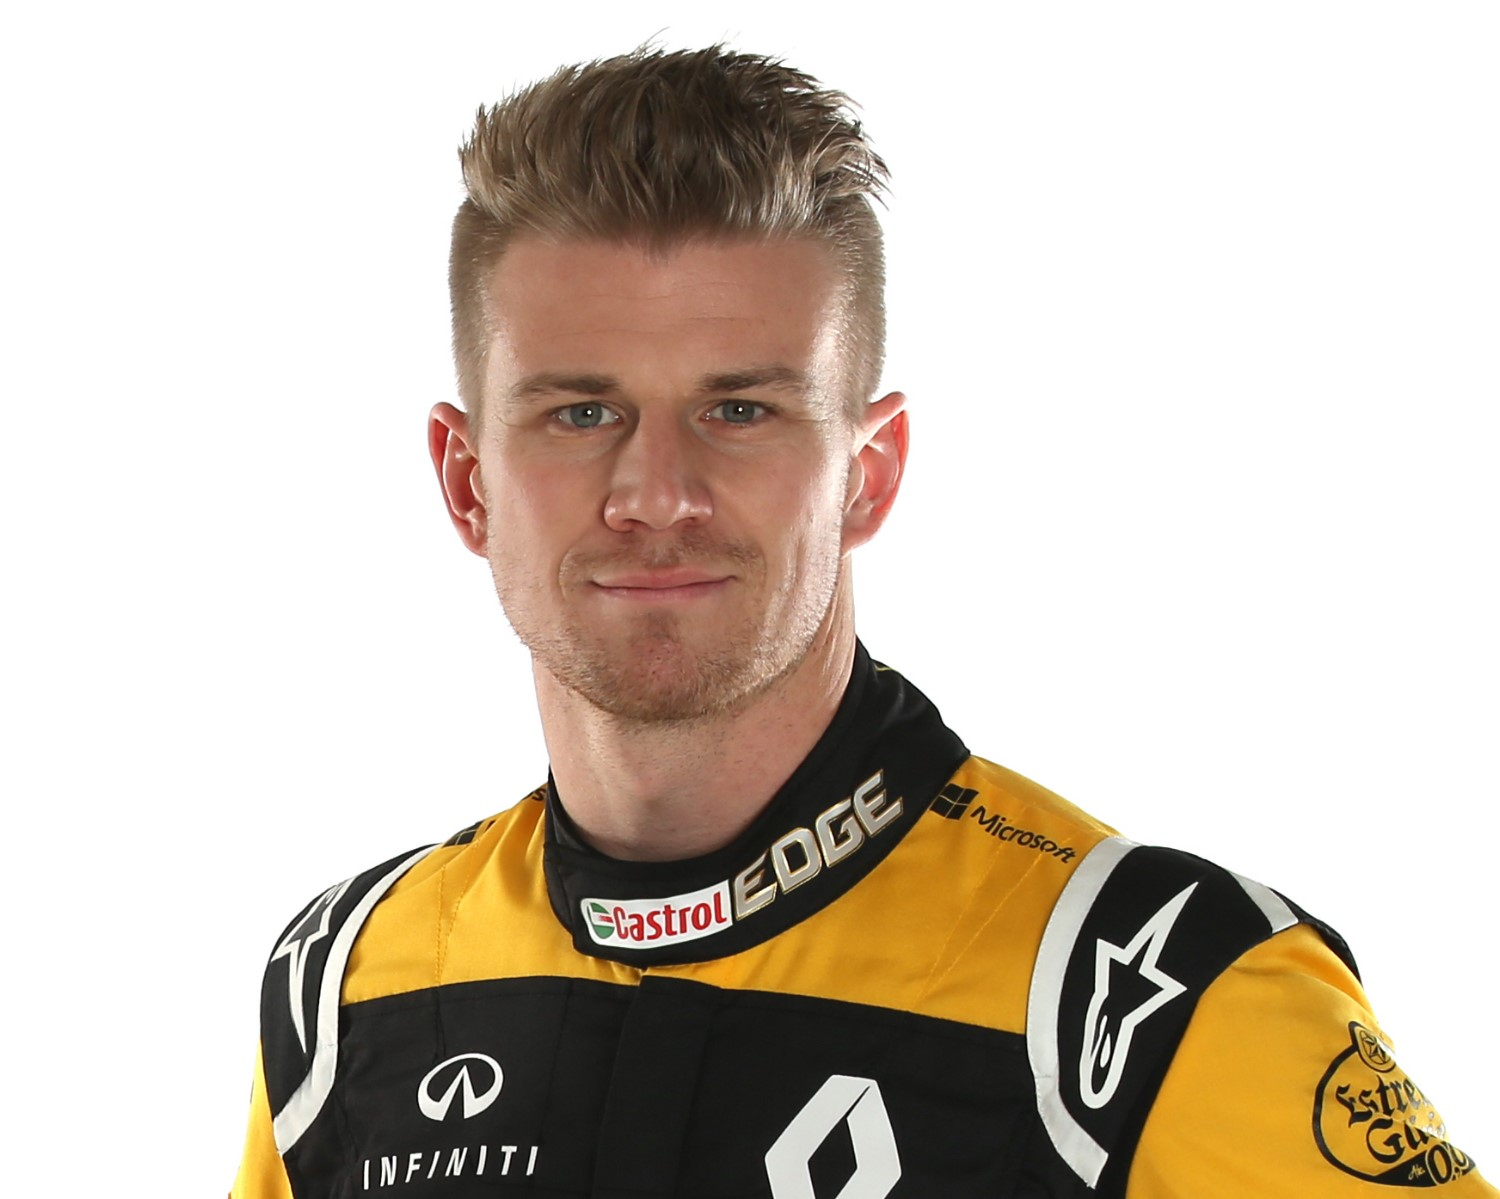 Nico Hulkenberg prepares to weed his garden in 2020